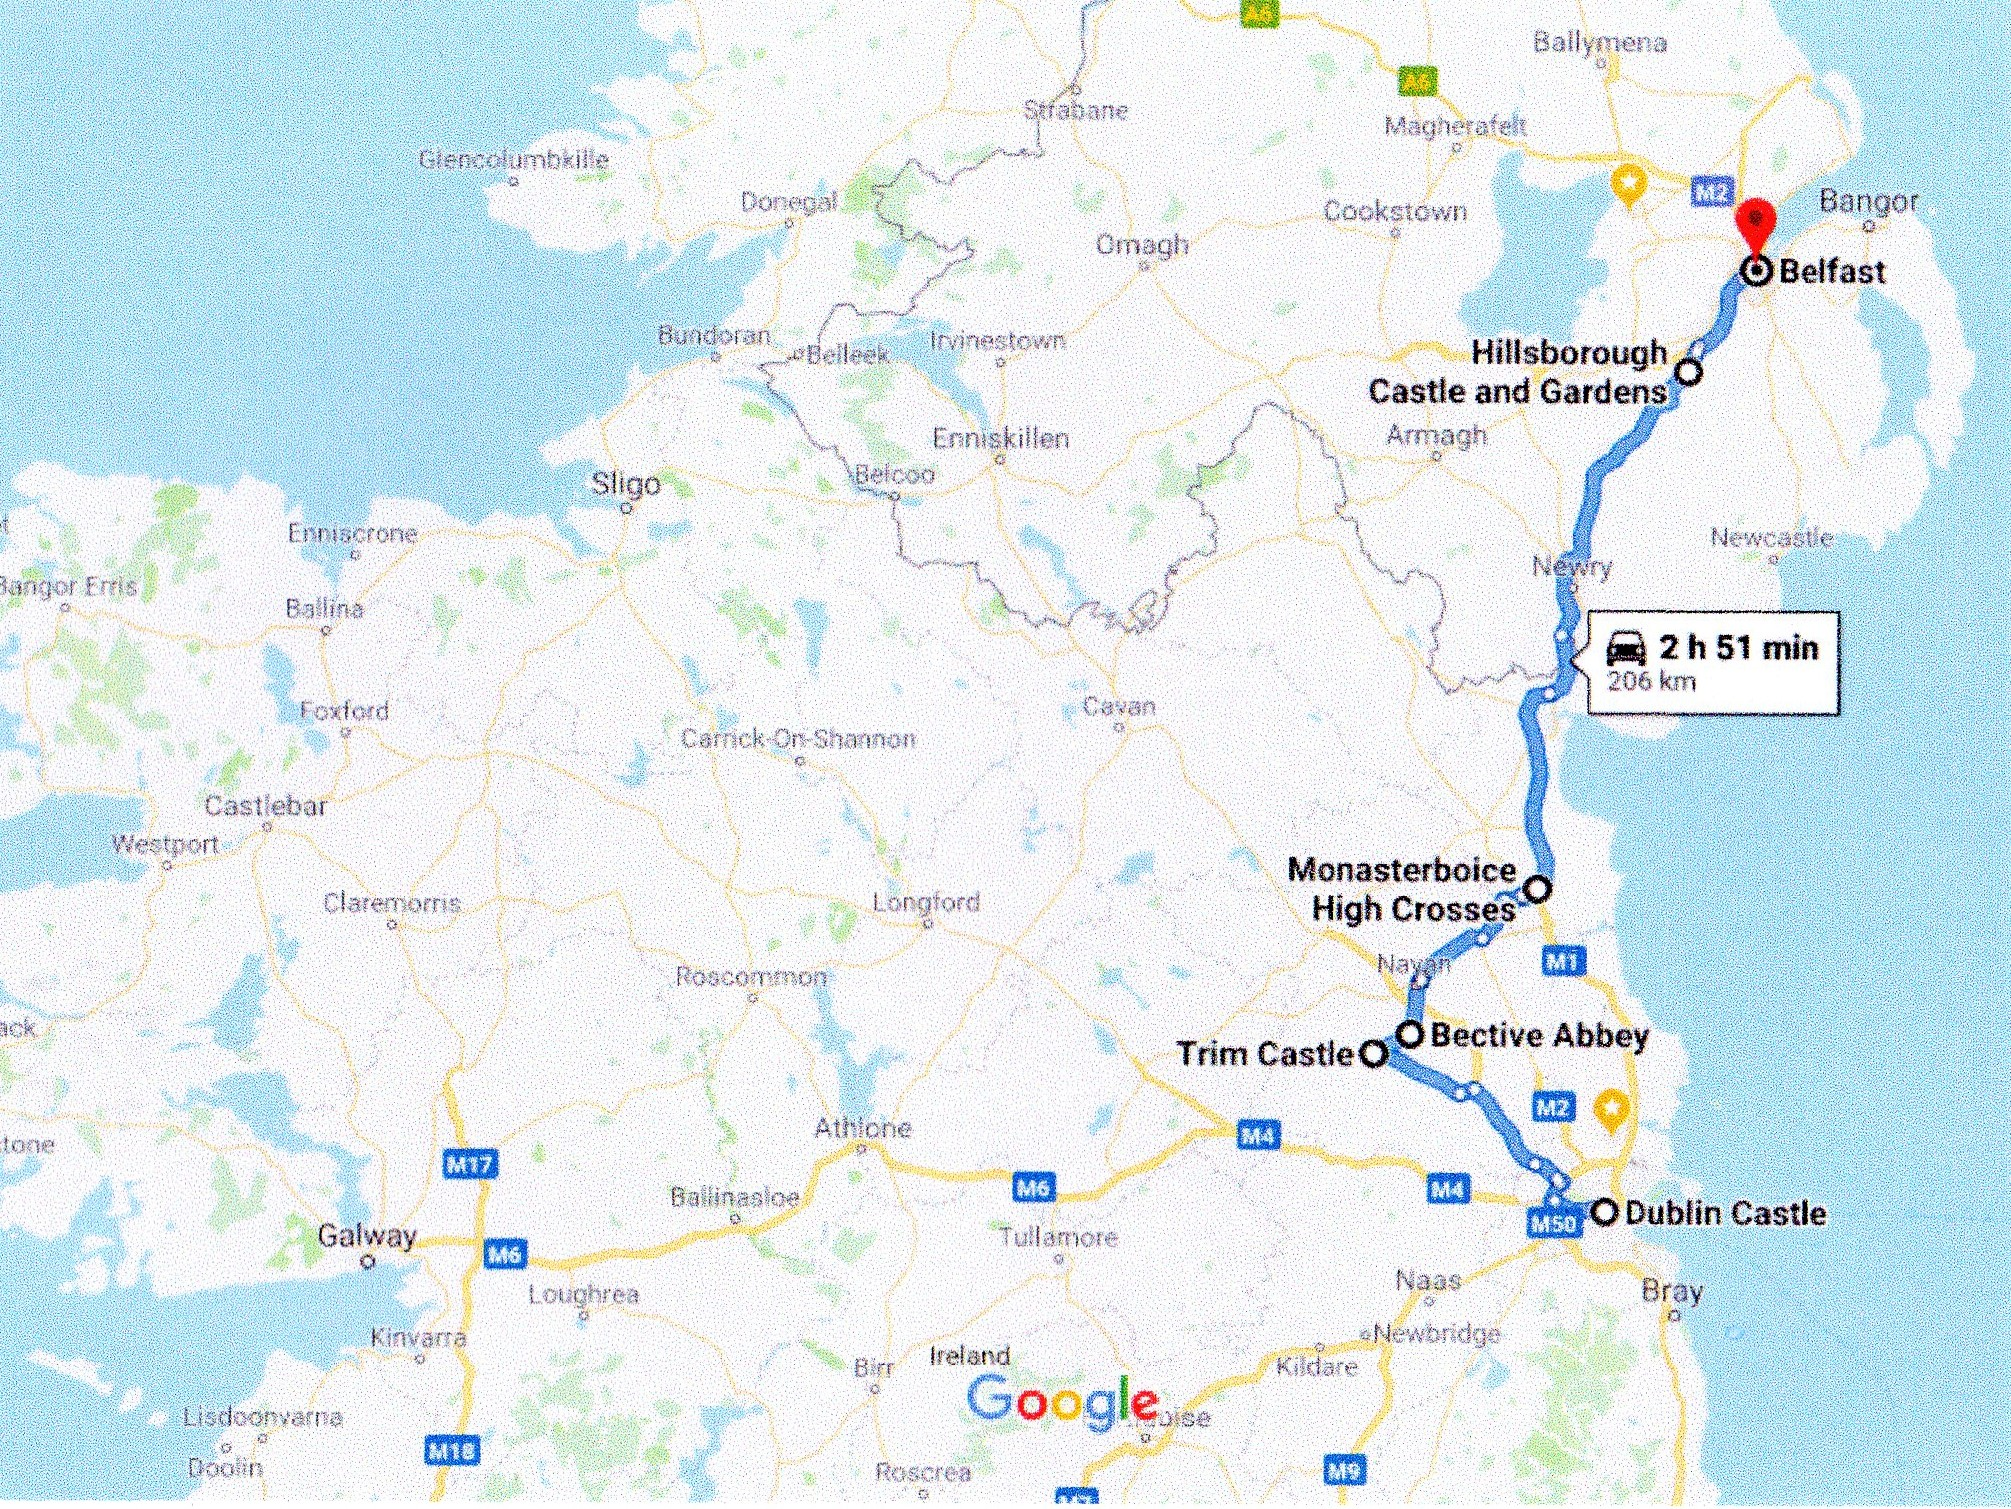 Google route map dublin to Belfast via Trim Castle